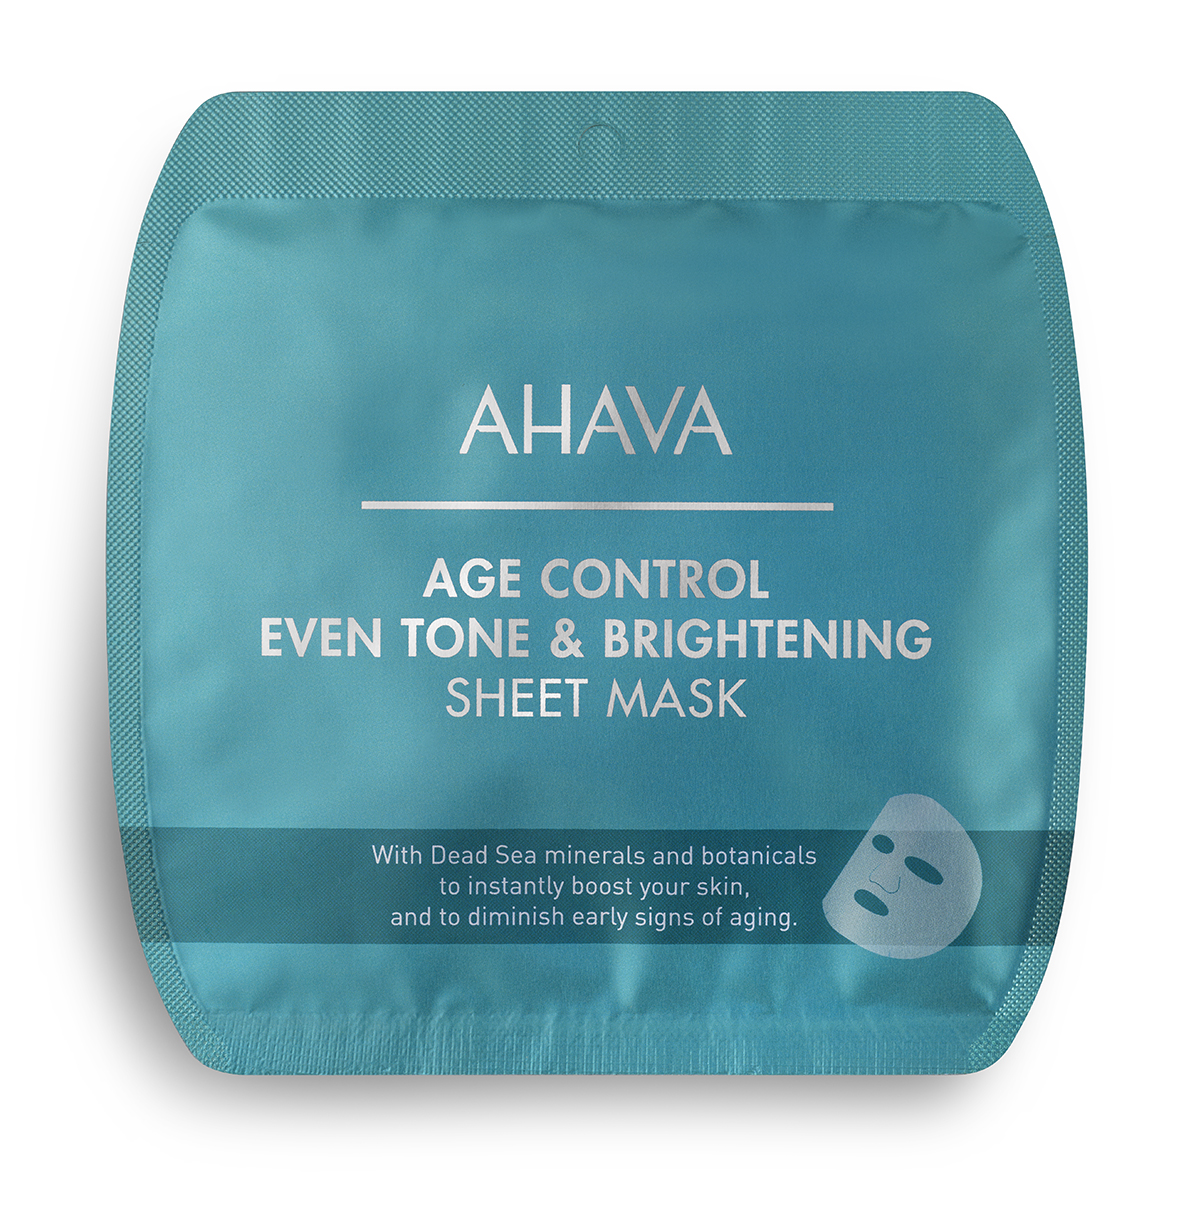 AHAVA Age control - Even Tone & Brightening Sheet Mask - Single use